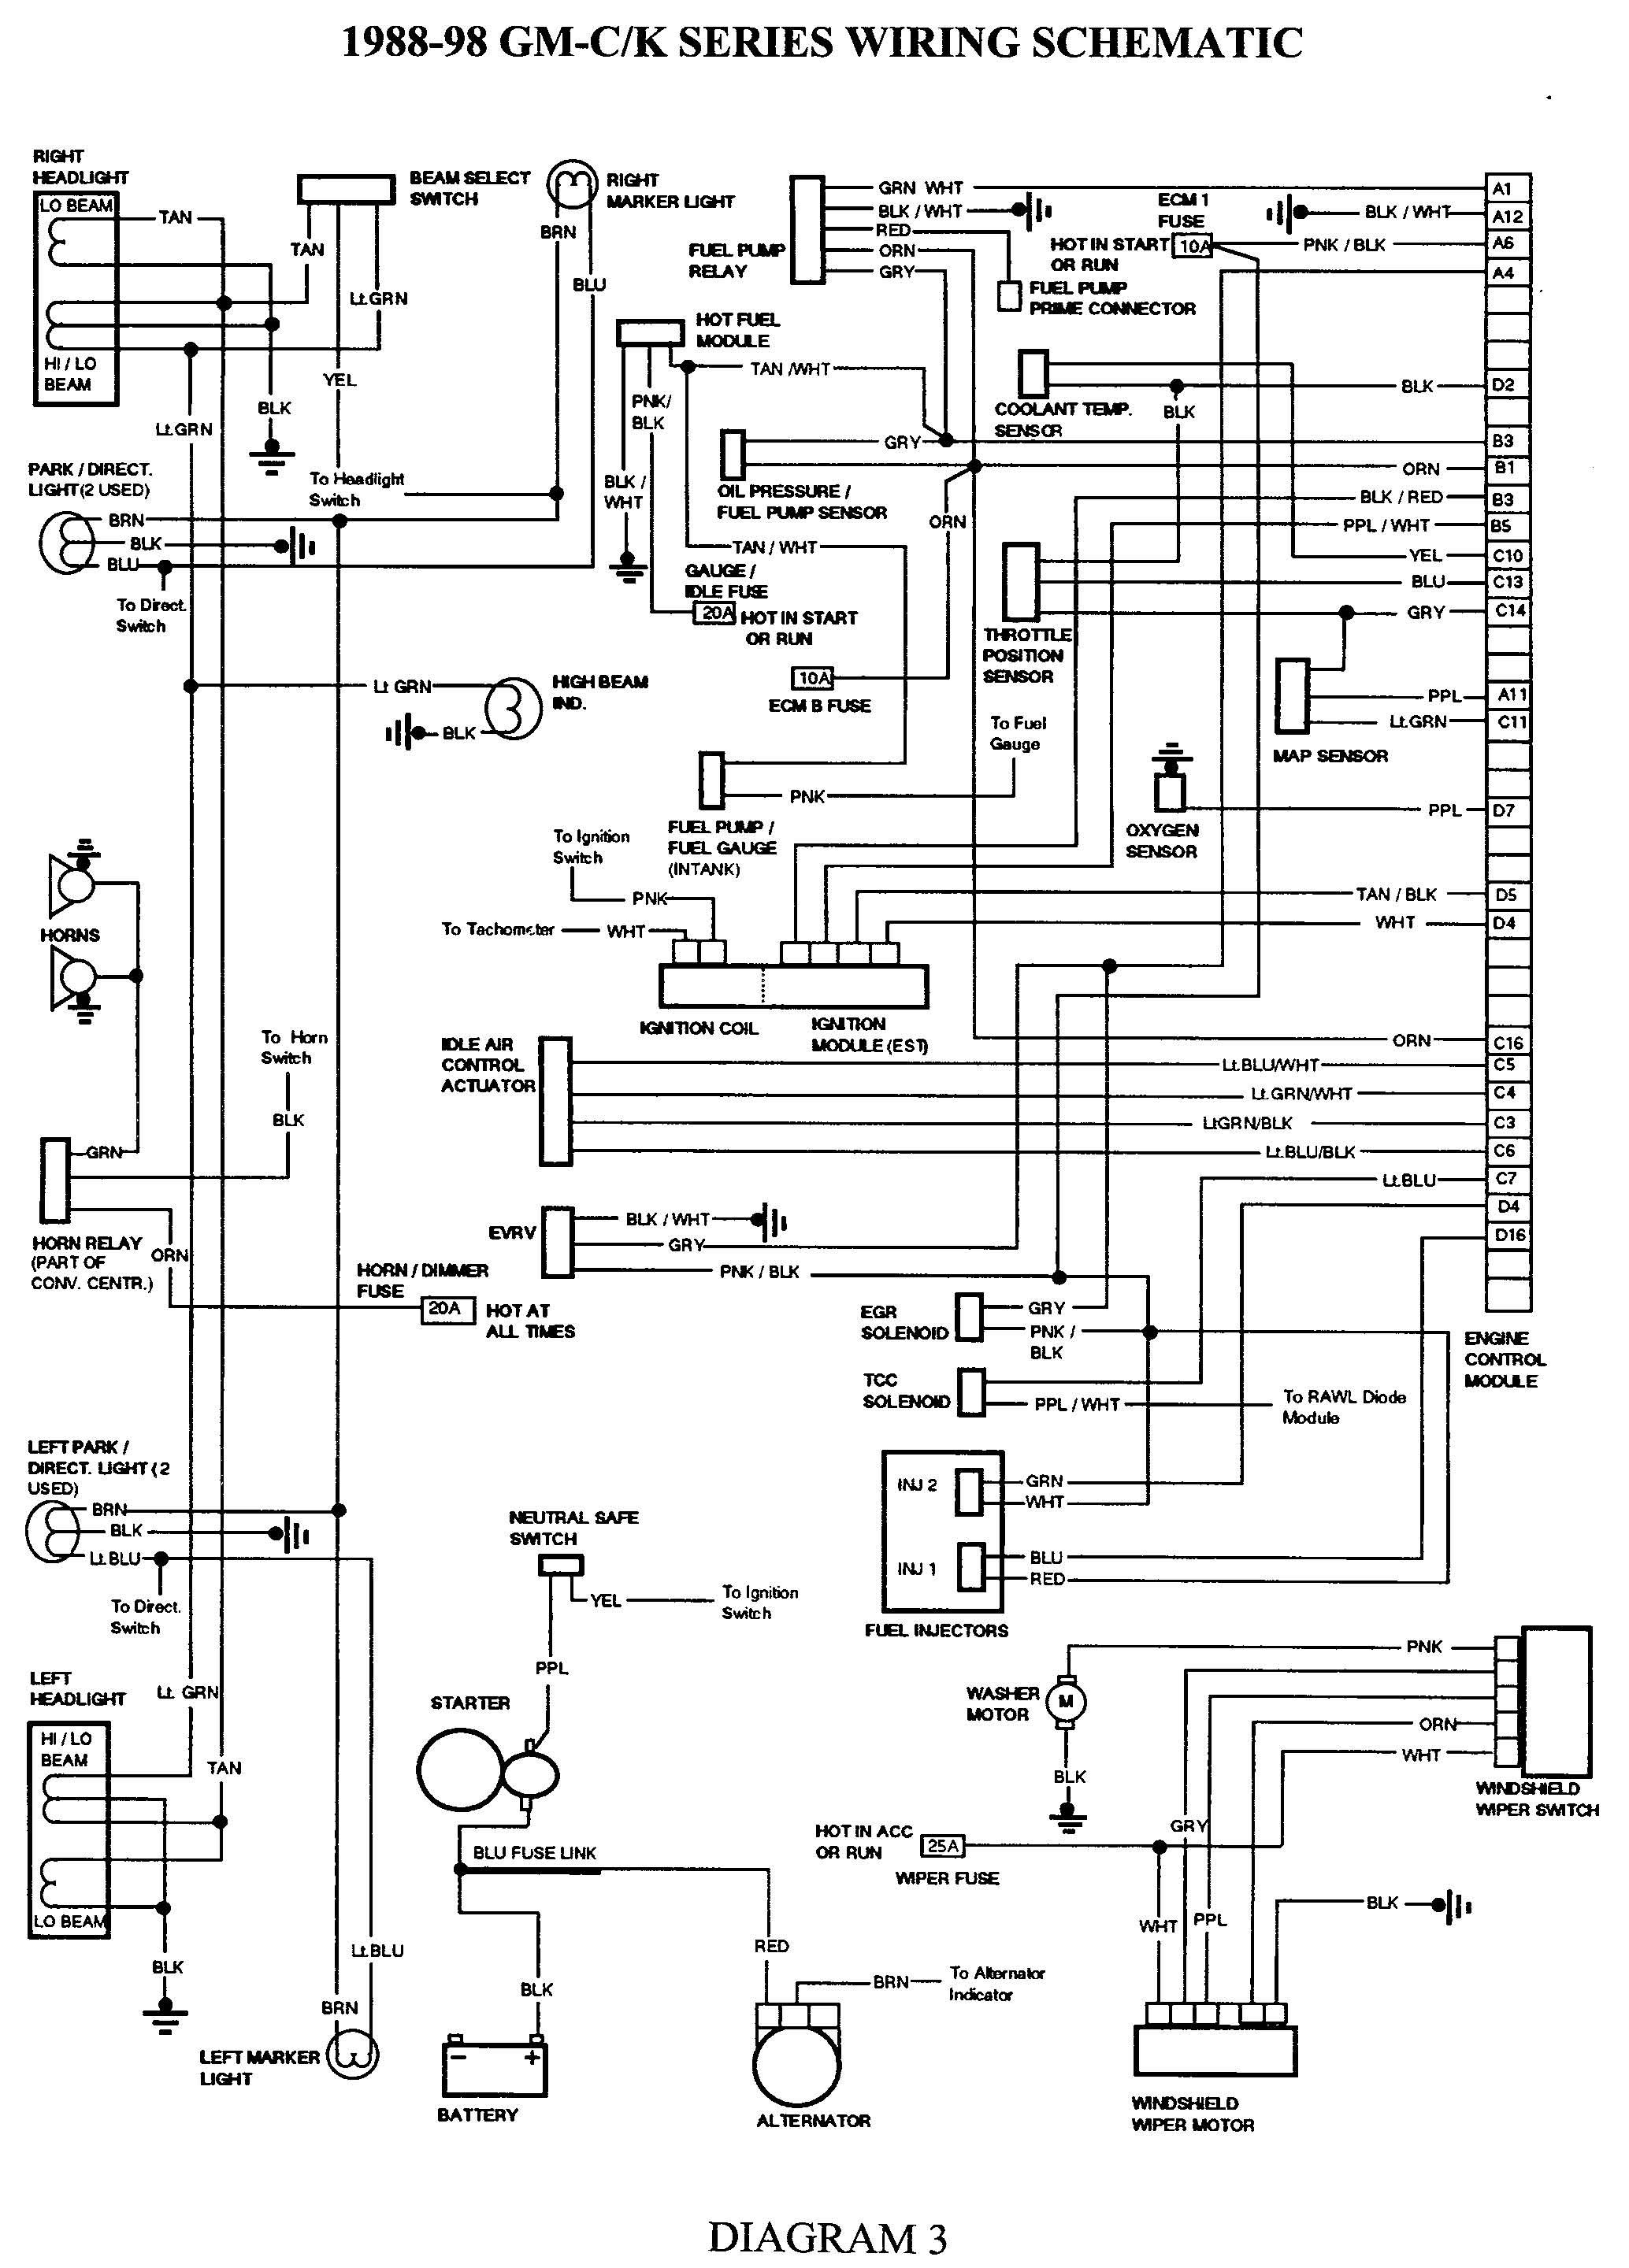 b2f2e5dbdc07dada83ef514f6d4ce3d4 gmc truck wiring diagrams on gm wiring harness diagram 88 98 kc engine wiring harness for 1996 gmc sonoma at bakdesigns.co